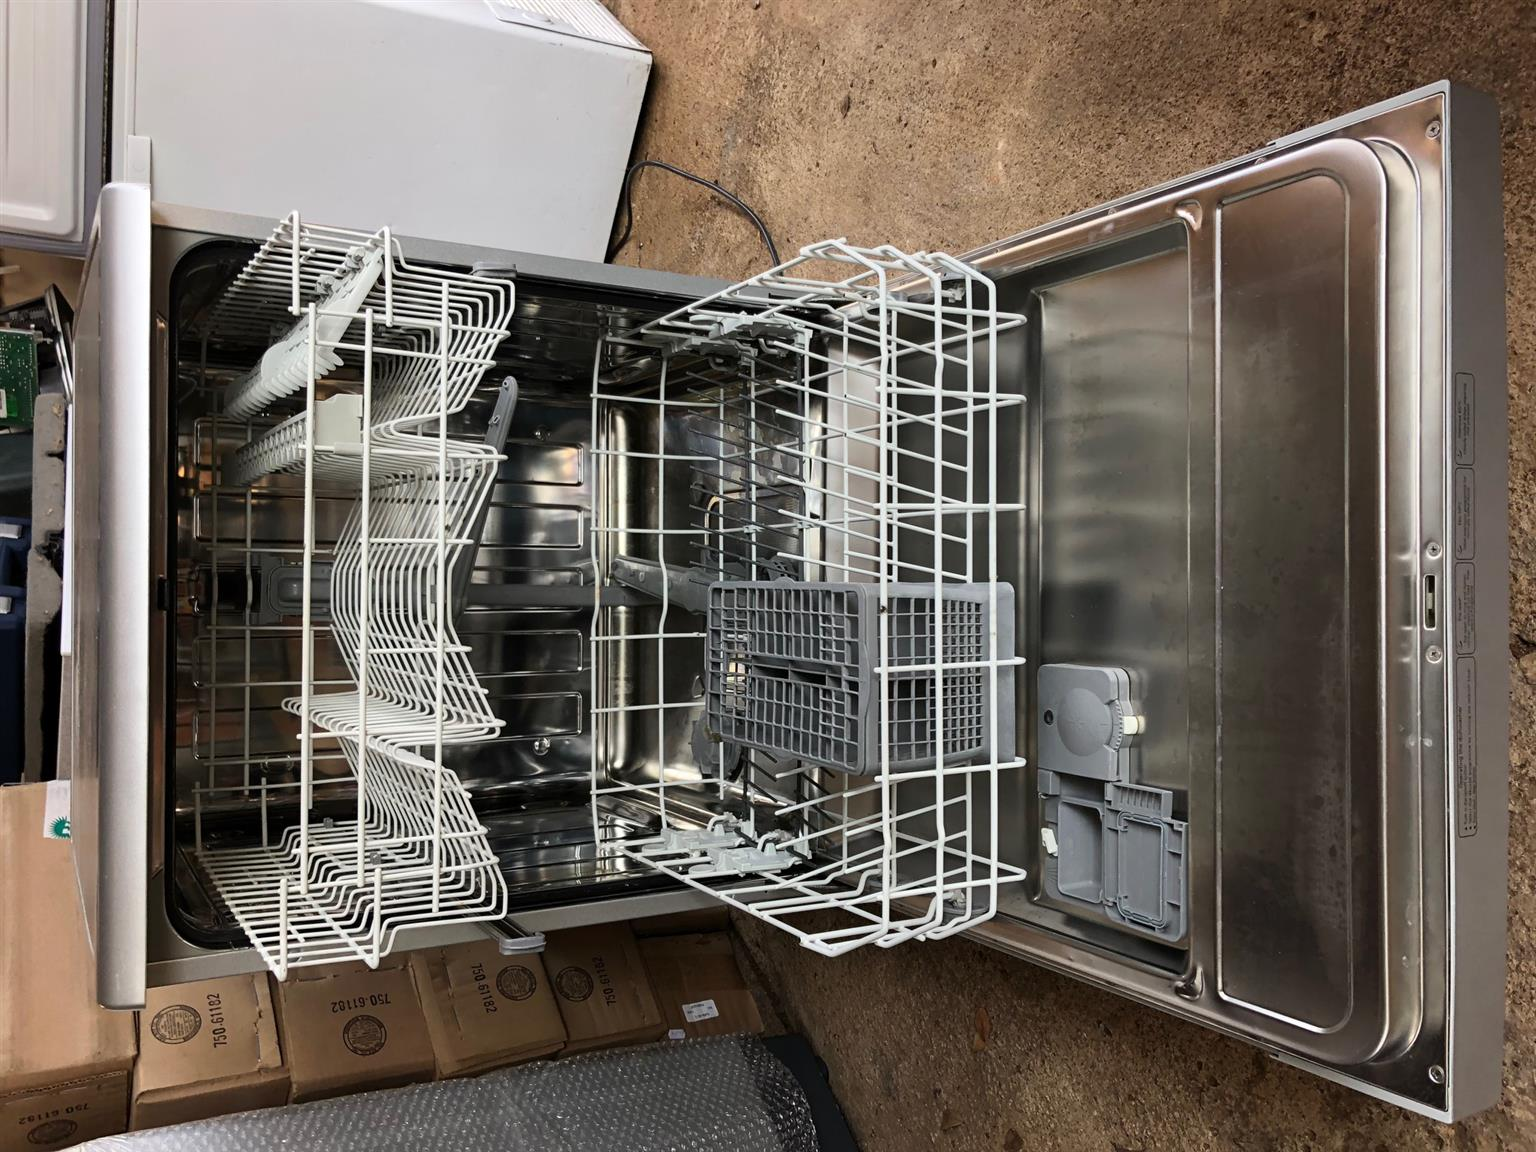 Defy Metallic Silver Dishwasher